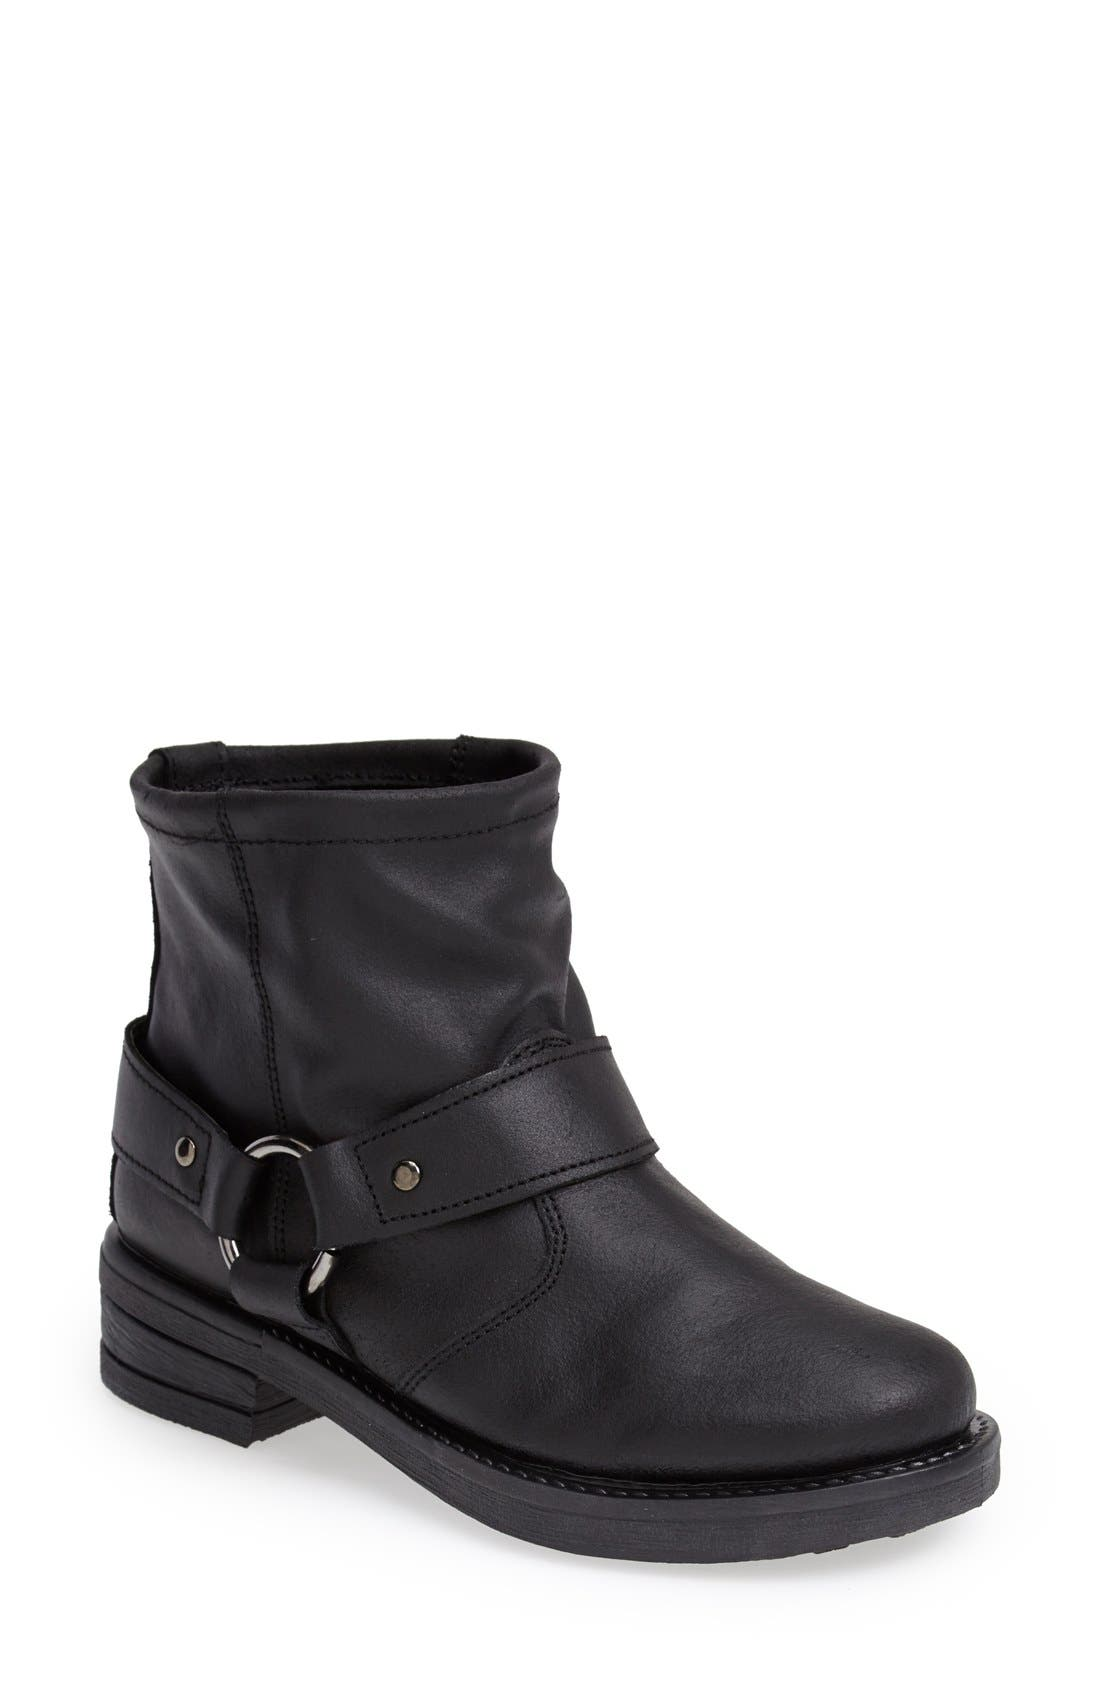 Main Image - Topshop 'Buster' Leather Harness Biker Boot (Women)